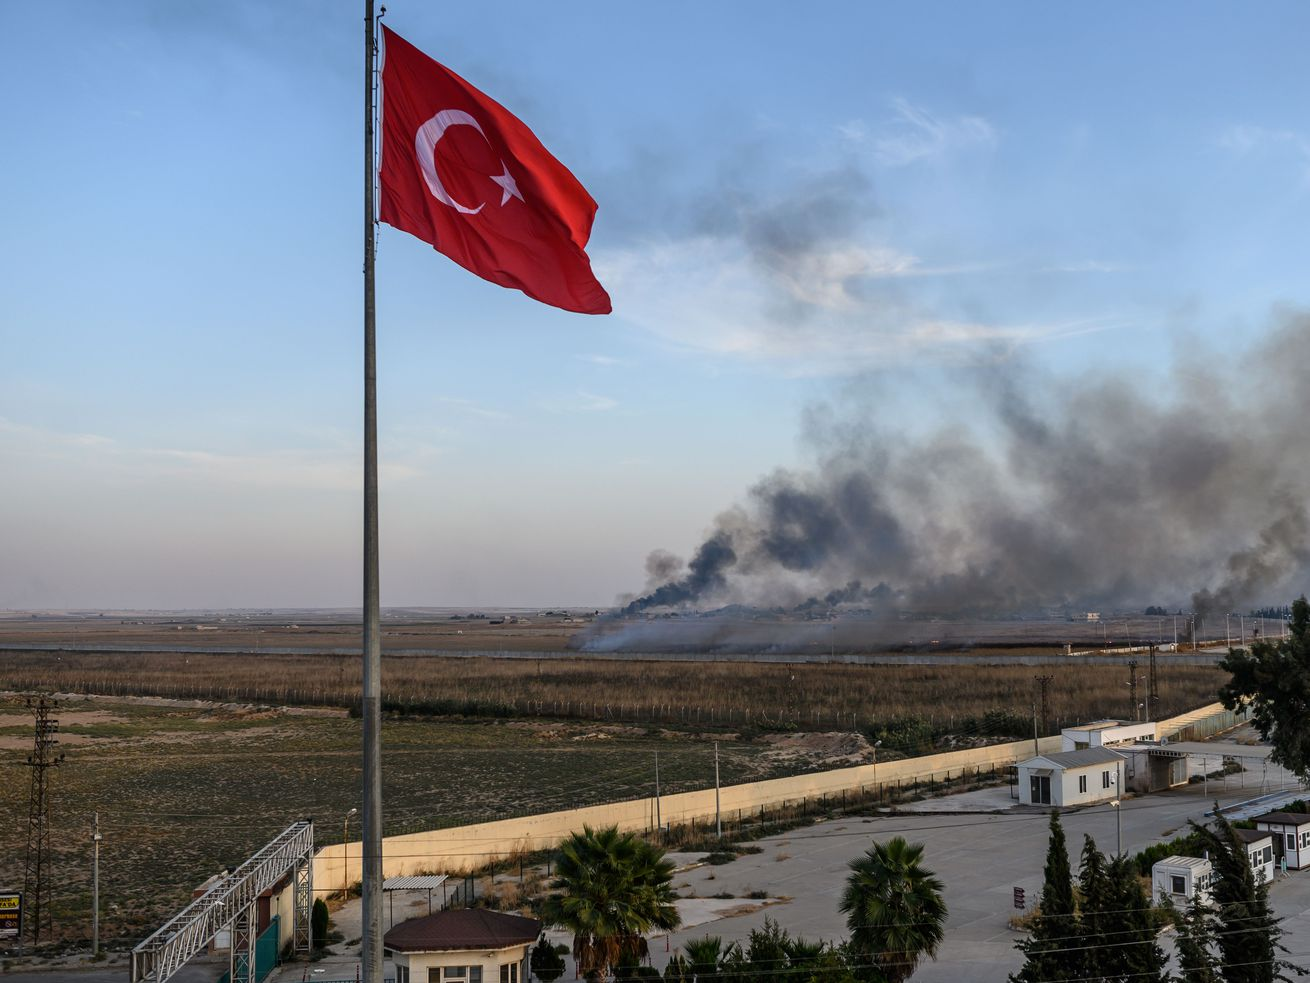 A Turkish flag flies in the foreground while smoke rises from over the border in Syria.